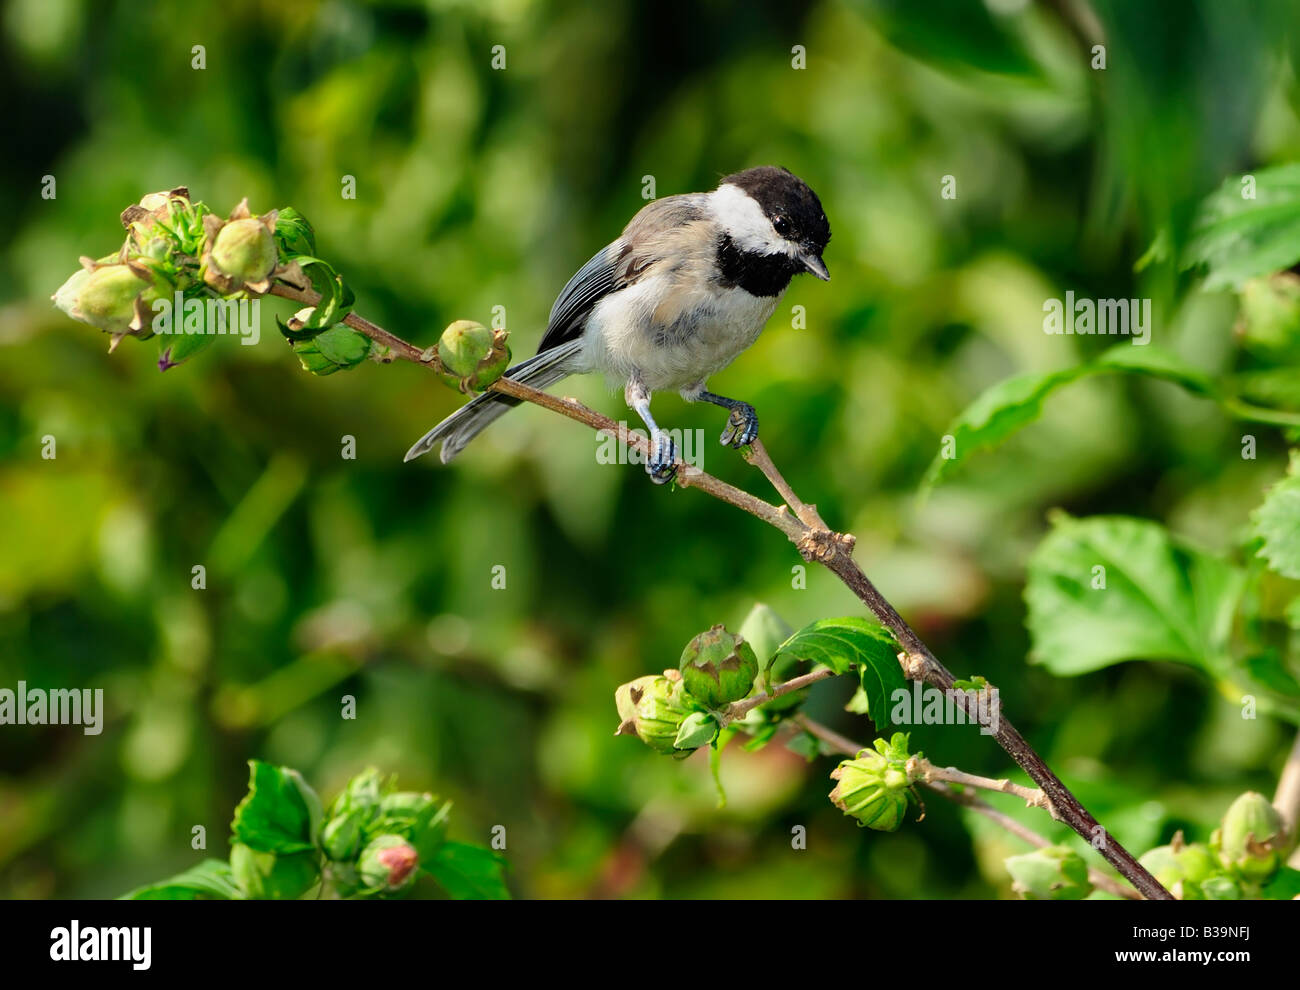 A Black capped Chickadee, Poecile atricapilla, perches in a Rose of Sharon shrub, Hibiscus syriacus. Oklahoma, USA. - Stock Image